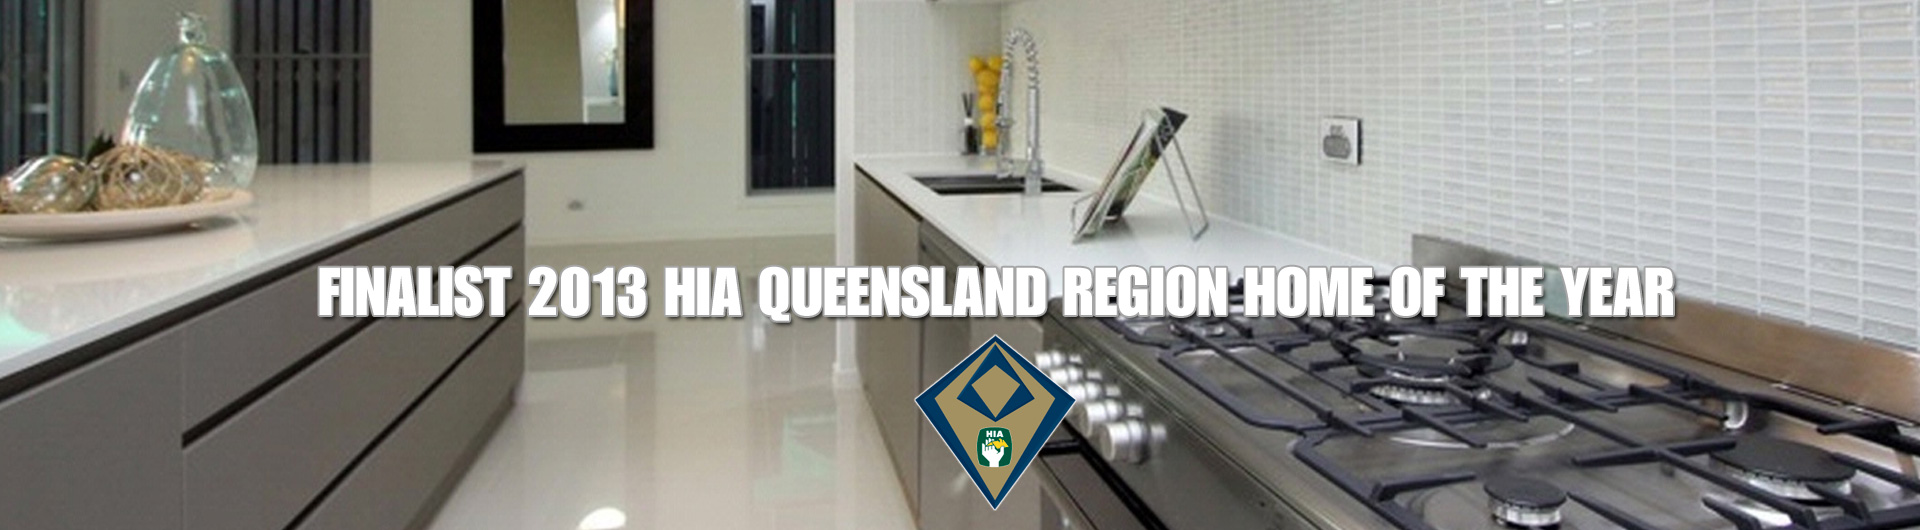 FINALIST 2013 HIA QUEENSLAND REGION HOME OF THE YEAR